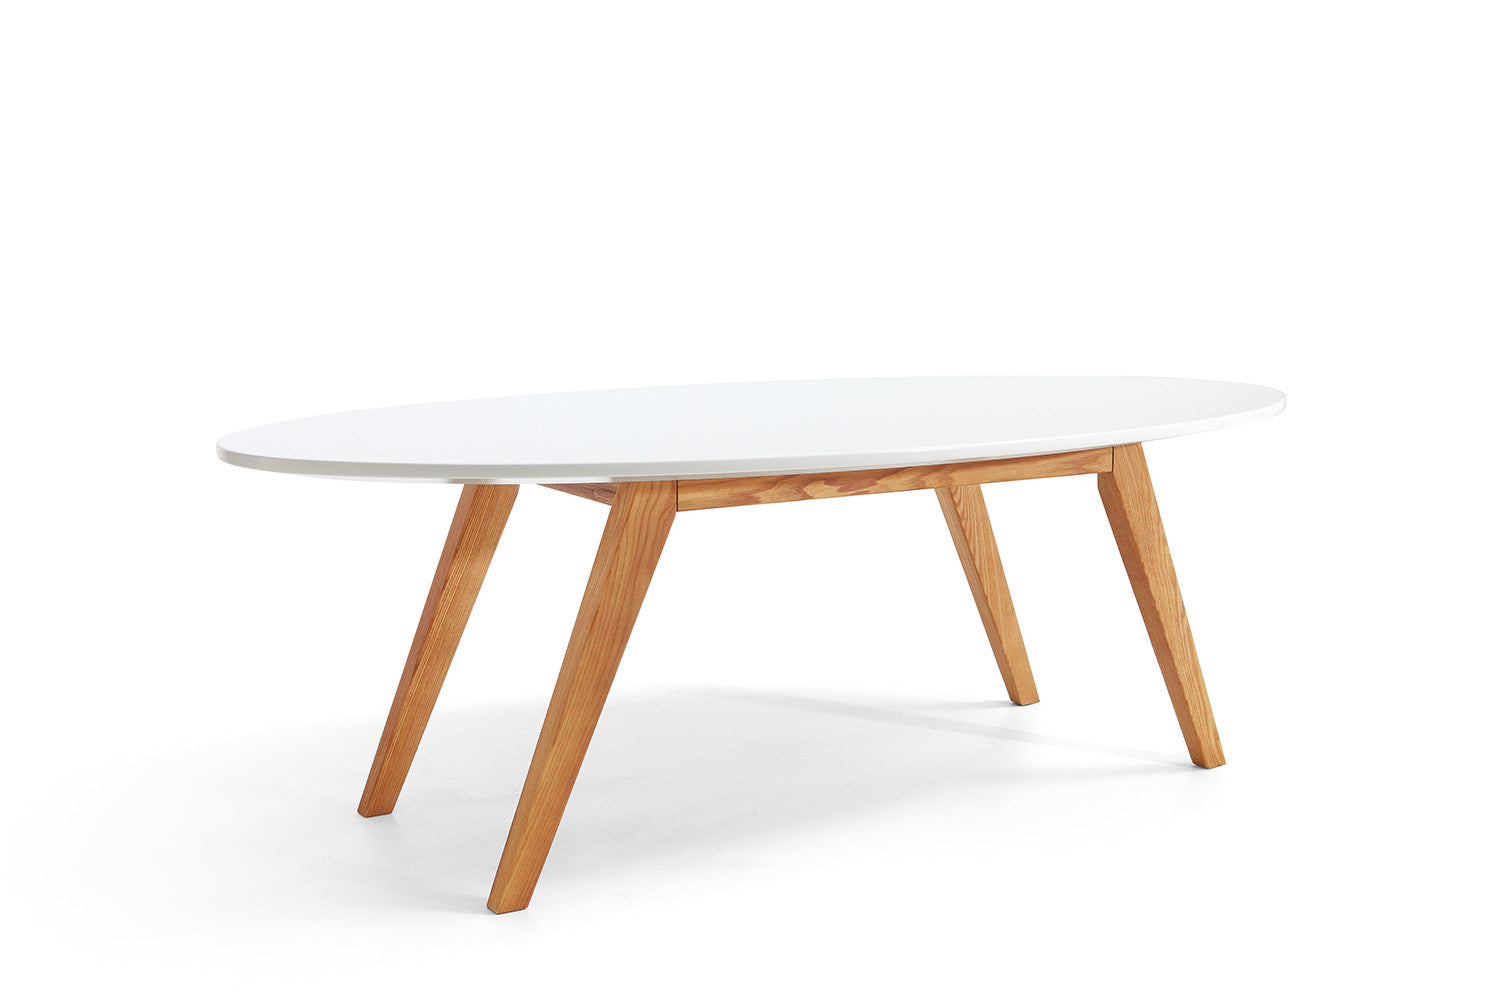 Table basse design en bois blanche b le dewarens for Table basse blanche pied bois